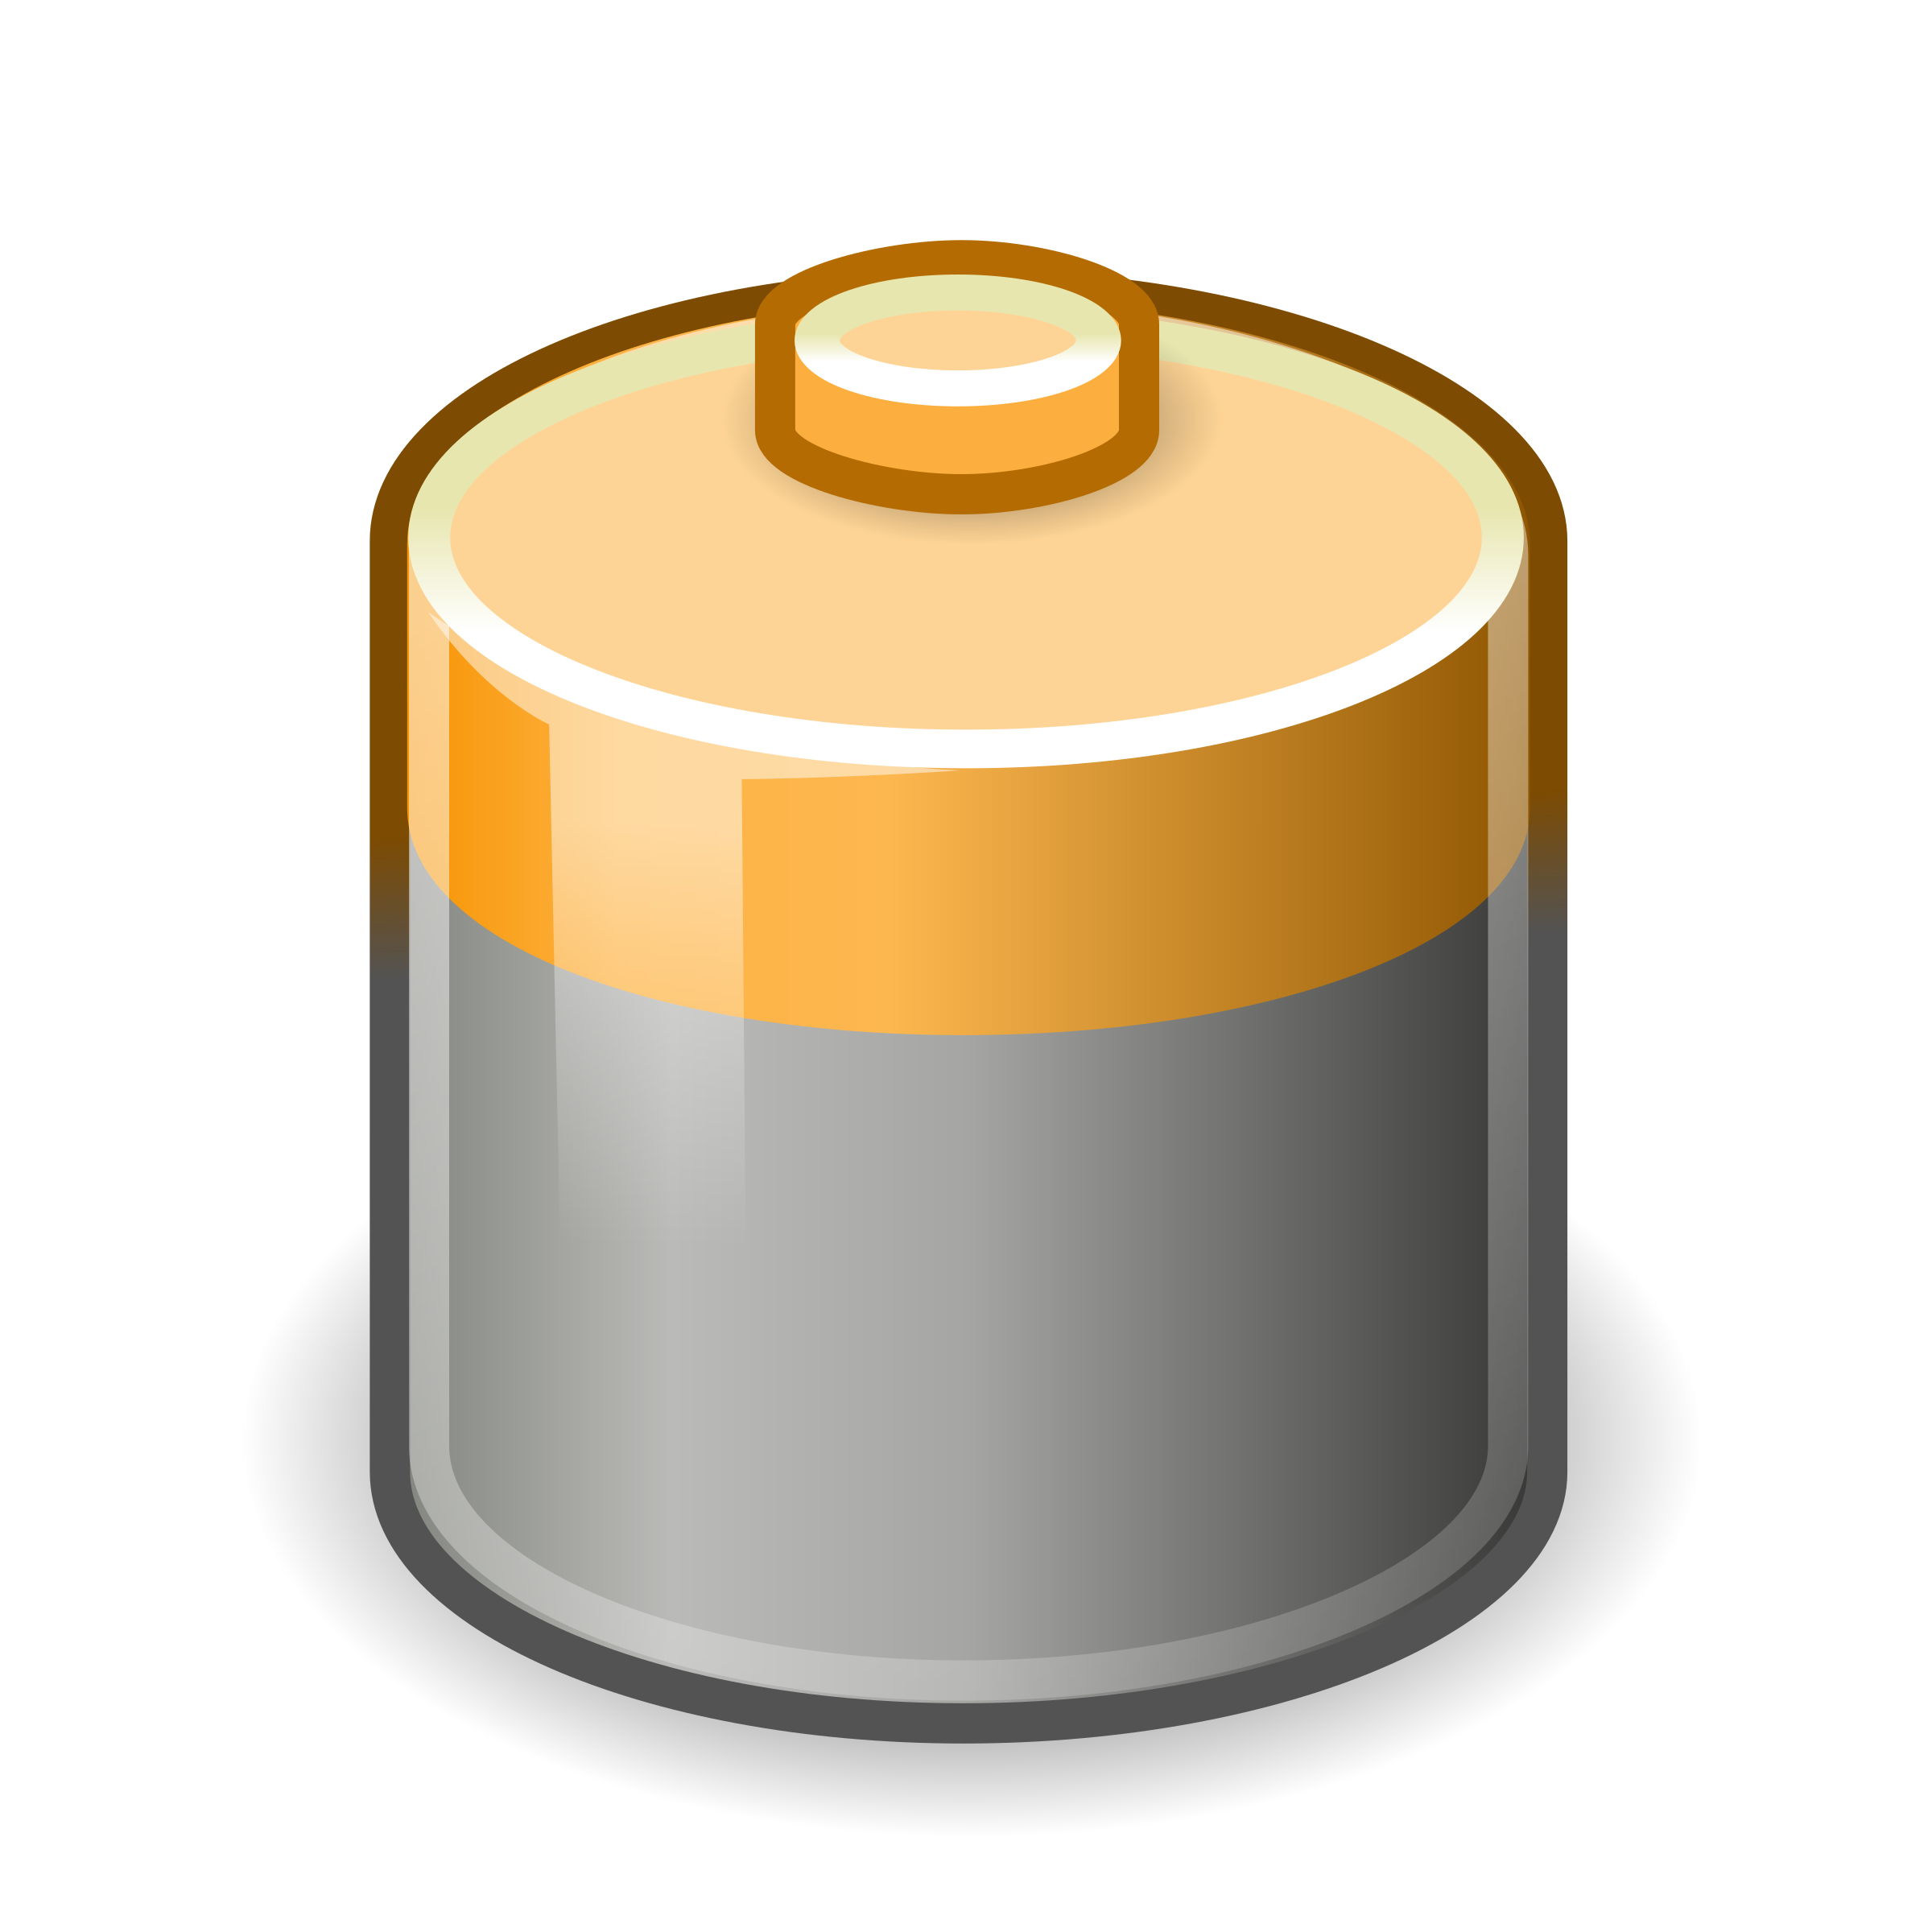 Tango big image png. Battery clipart cylinder